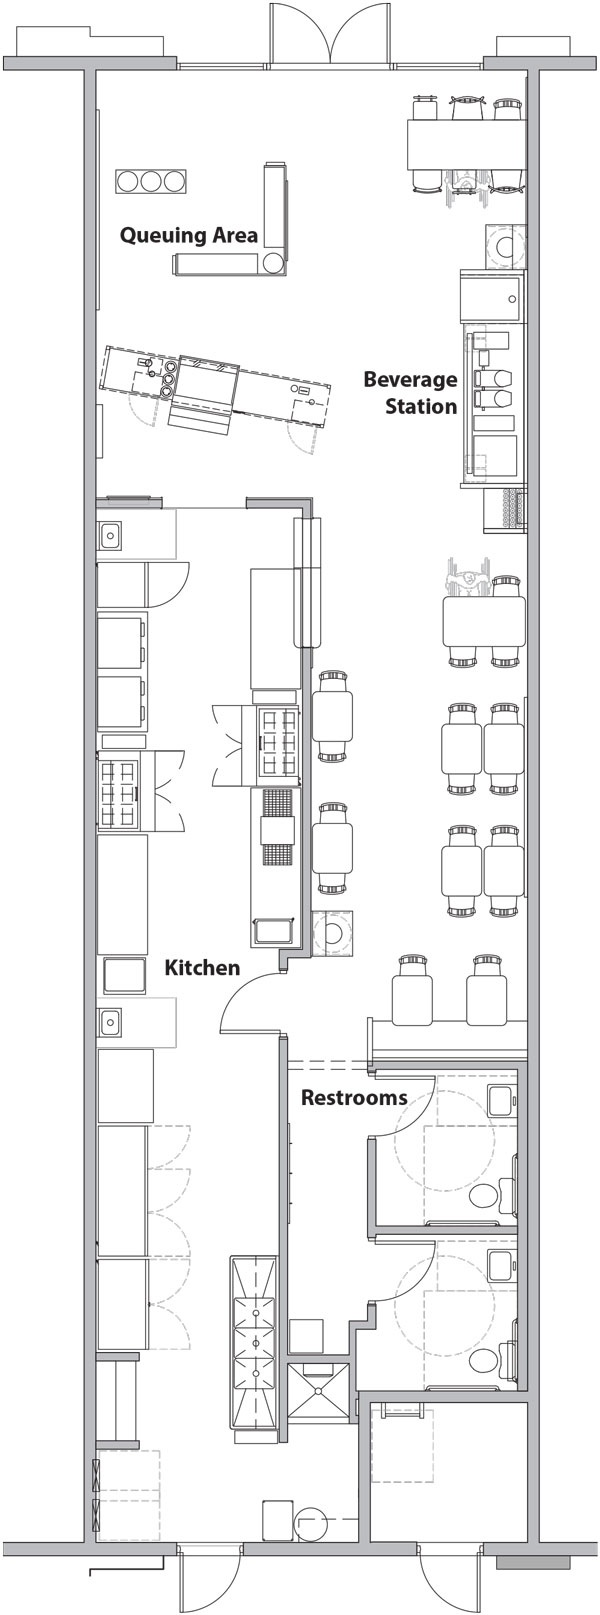 Firehouse floor plan